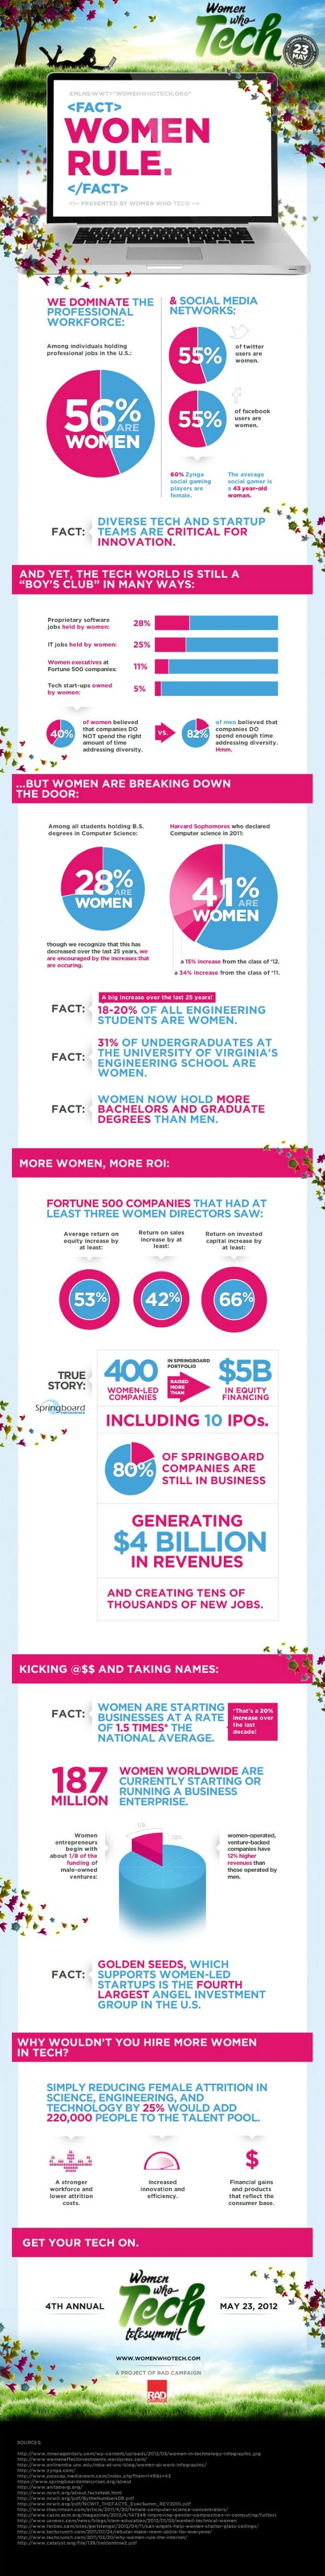 Fast Company article on why it makes sense to have women on boards and in leadership at tech companies. I'm quoted.  Infographic has lots of great data.